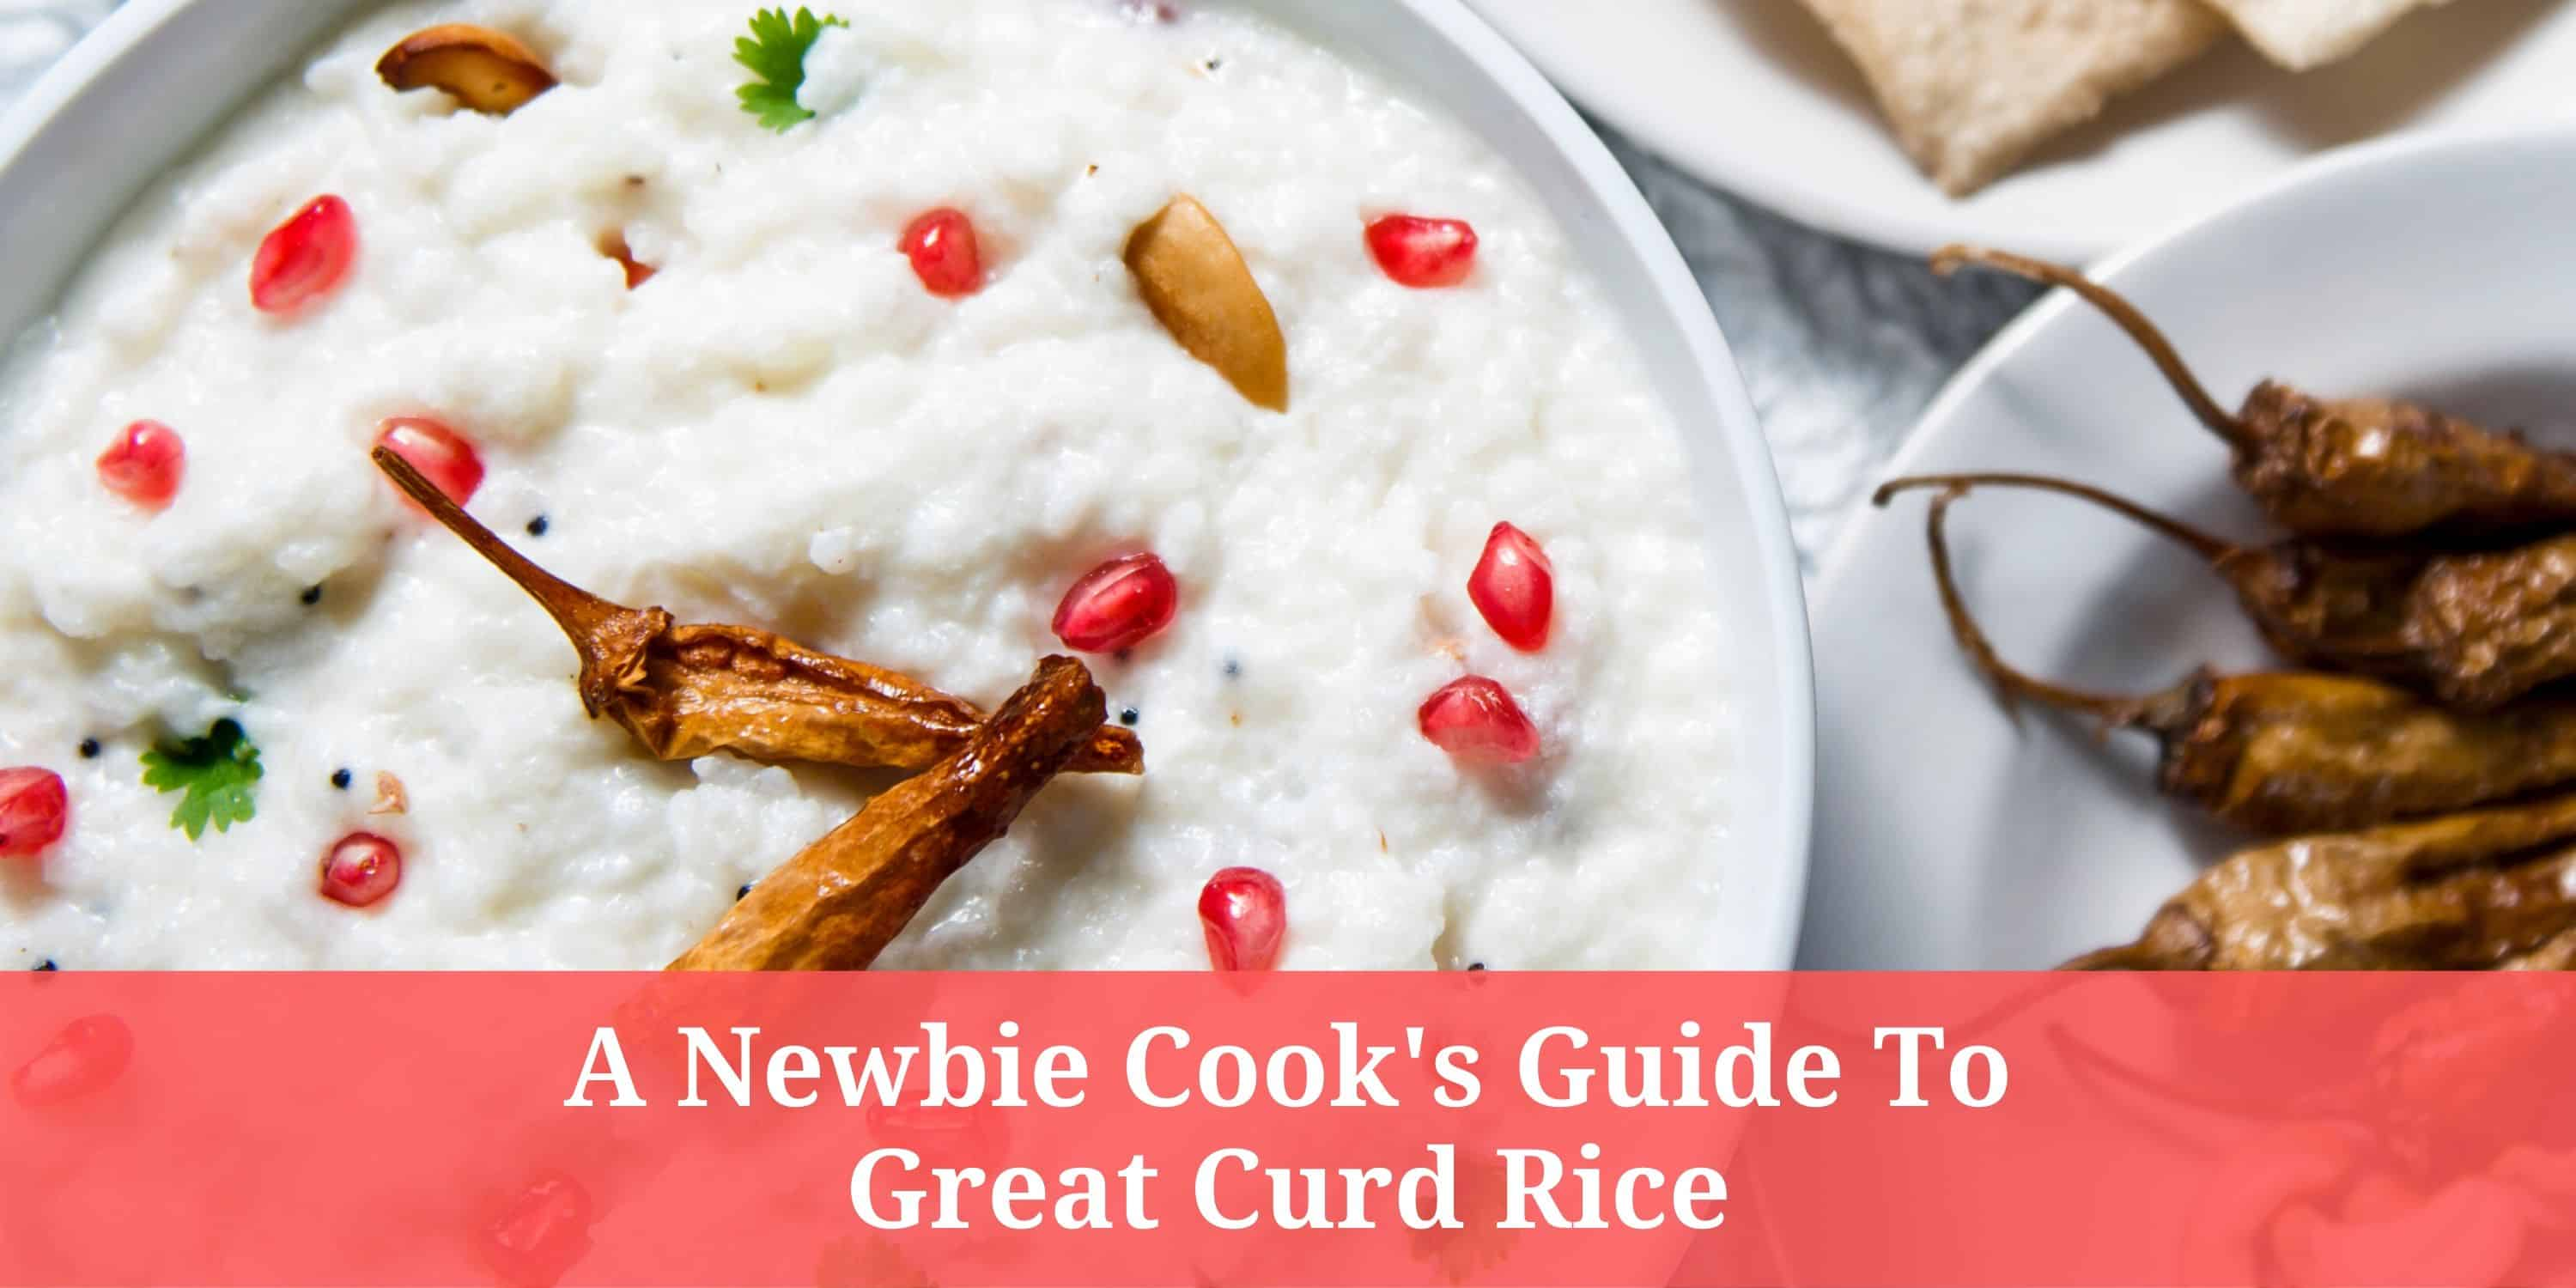 A Newbie Cook's Guide to Great Curd Rice